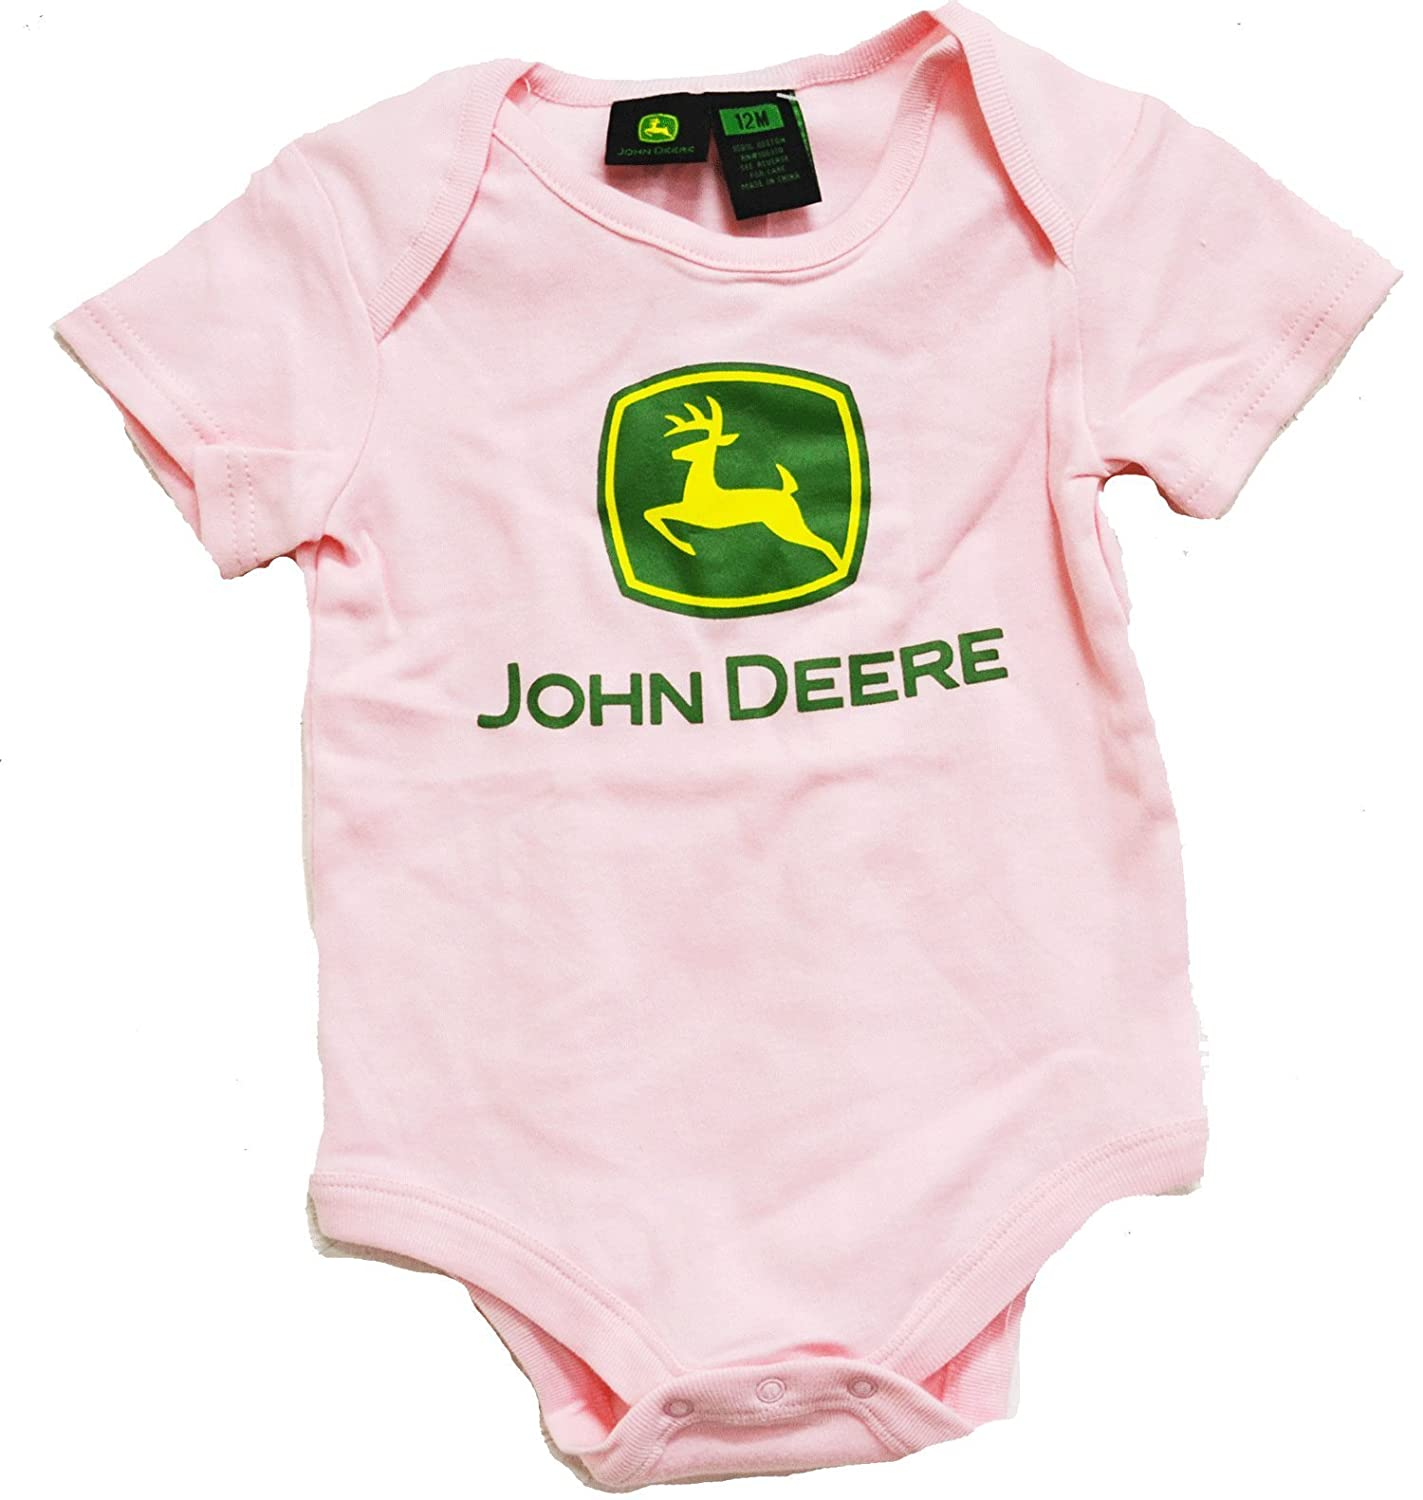 Dress the Kids in John Deere! We carry a wide selection of John Deere kids clothing and accessories sized for infants, toddlers and youth. Don't forget the matching socks and also mittens and gloves to keep those little hands warm.